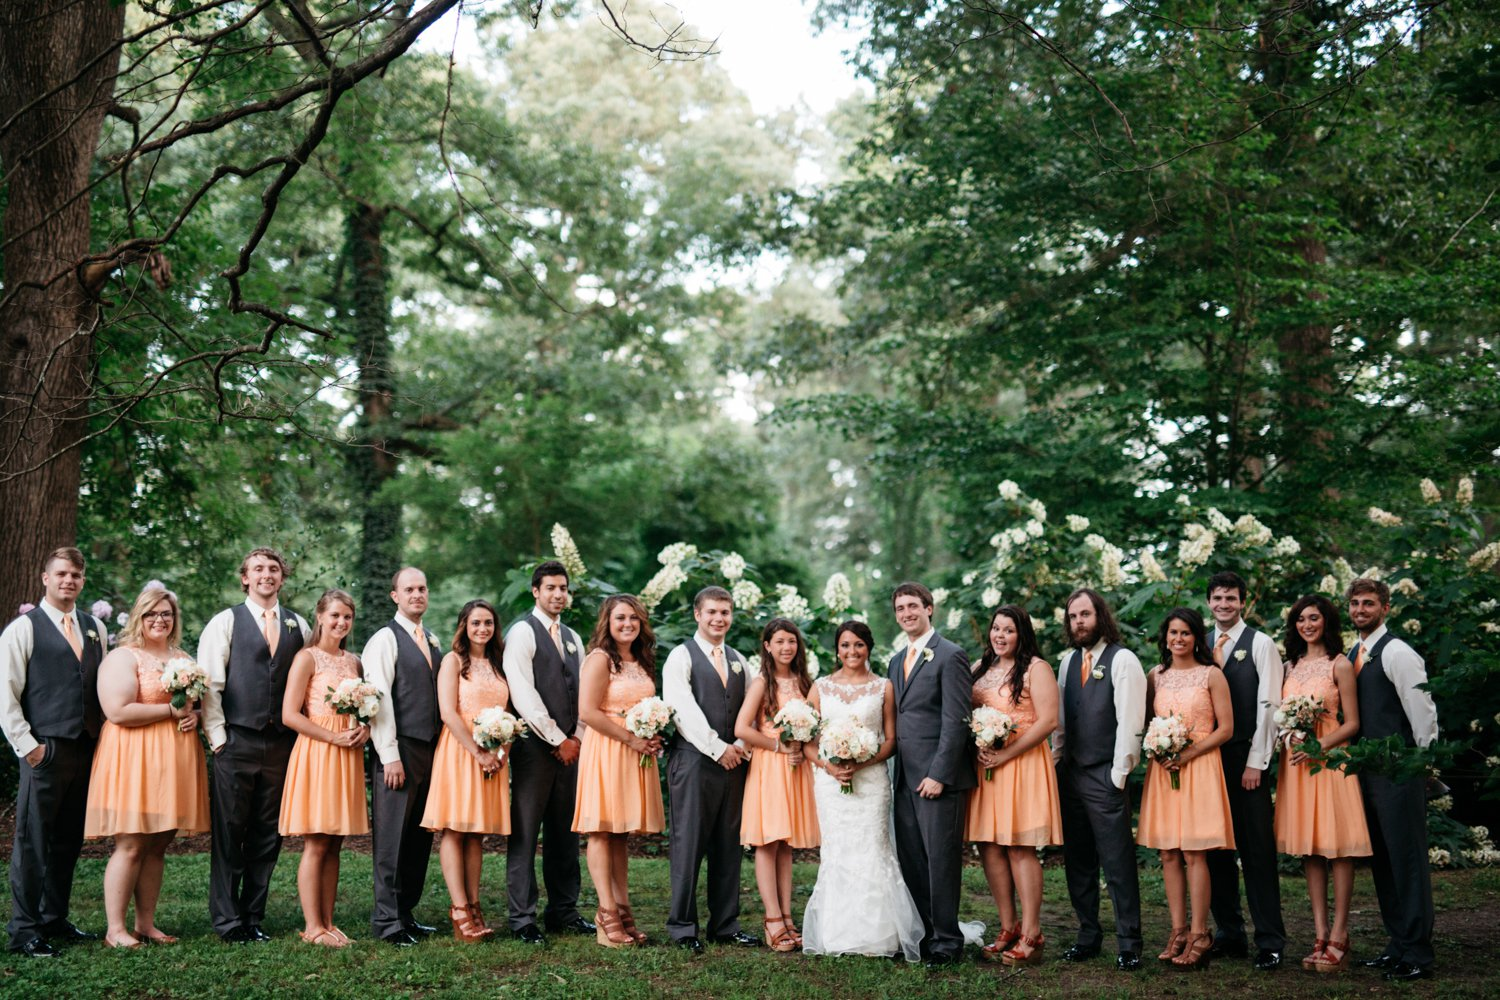 Middle_Tennessee_Wedding_Photographers_-58.jpg